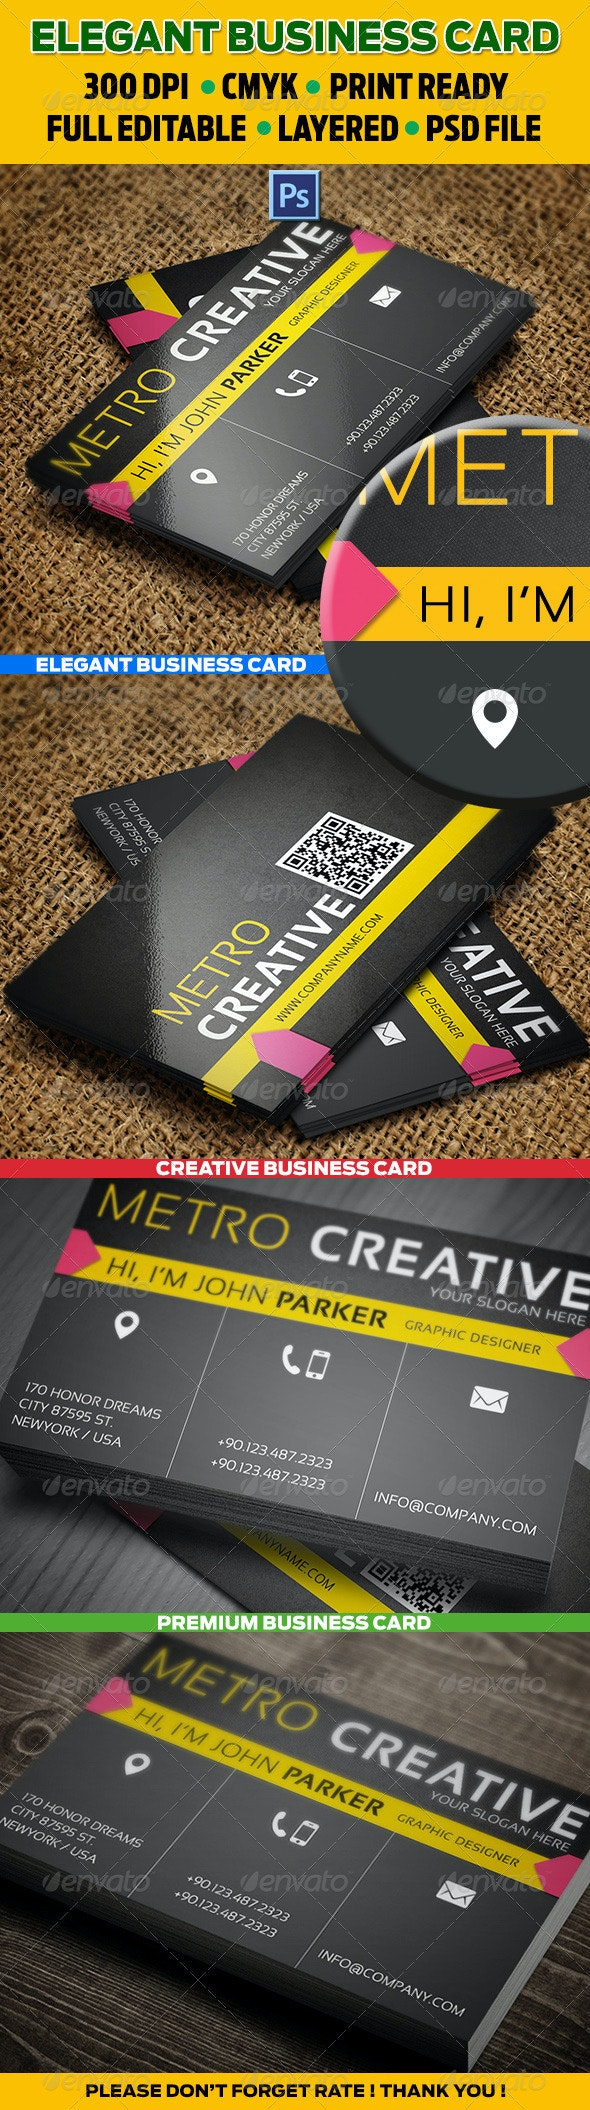 Creative Business Card 53 - Creative Business Cards